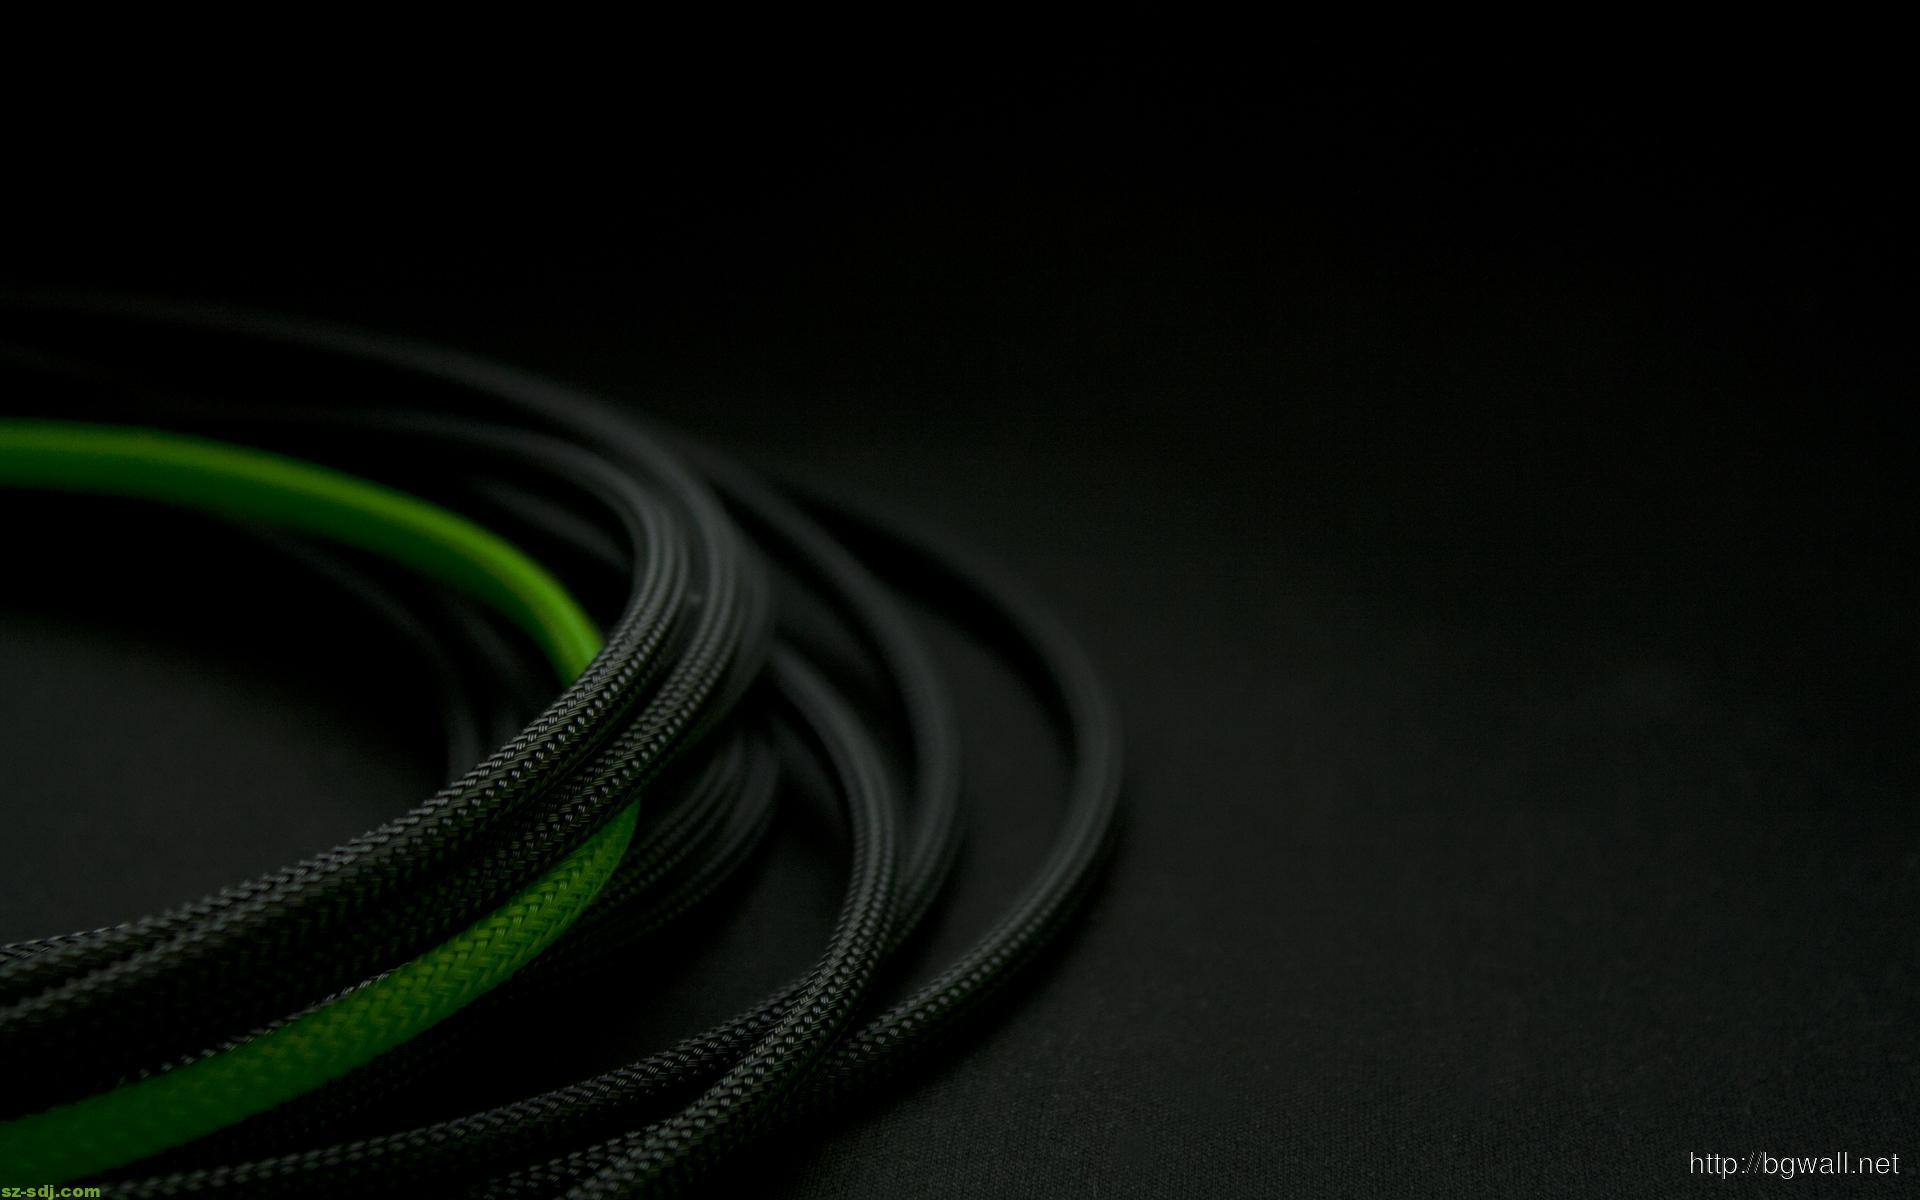 green-and-black-mini-cable-wallpaper